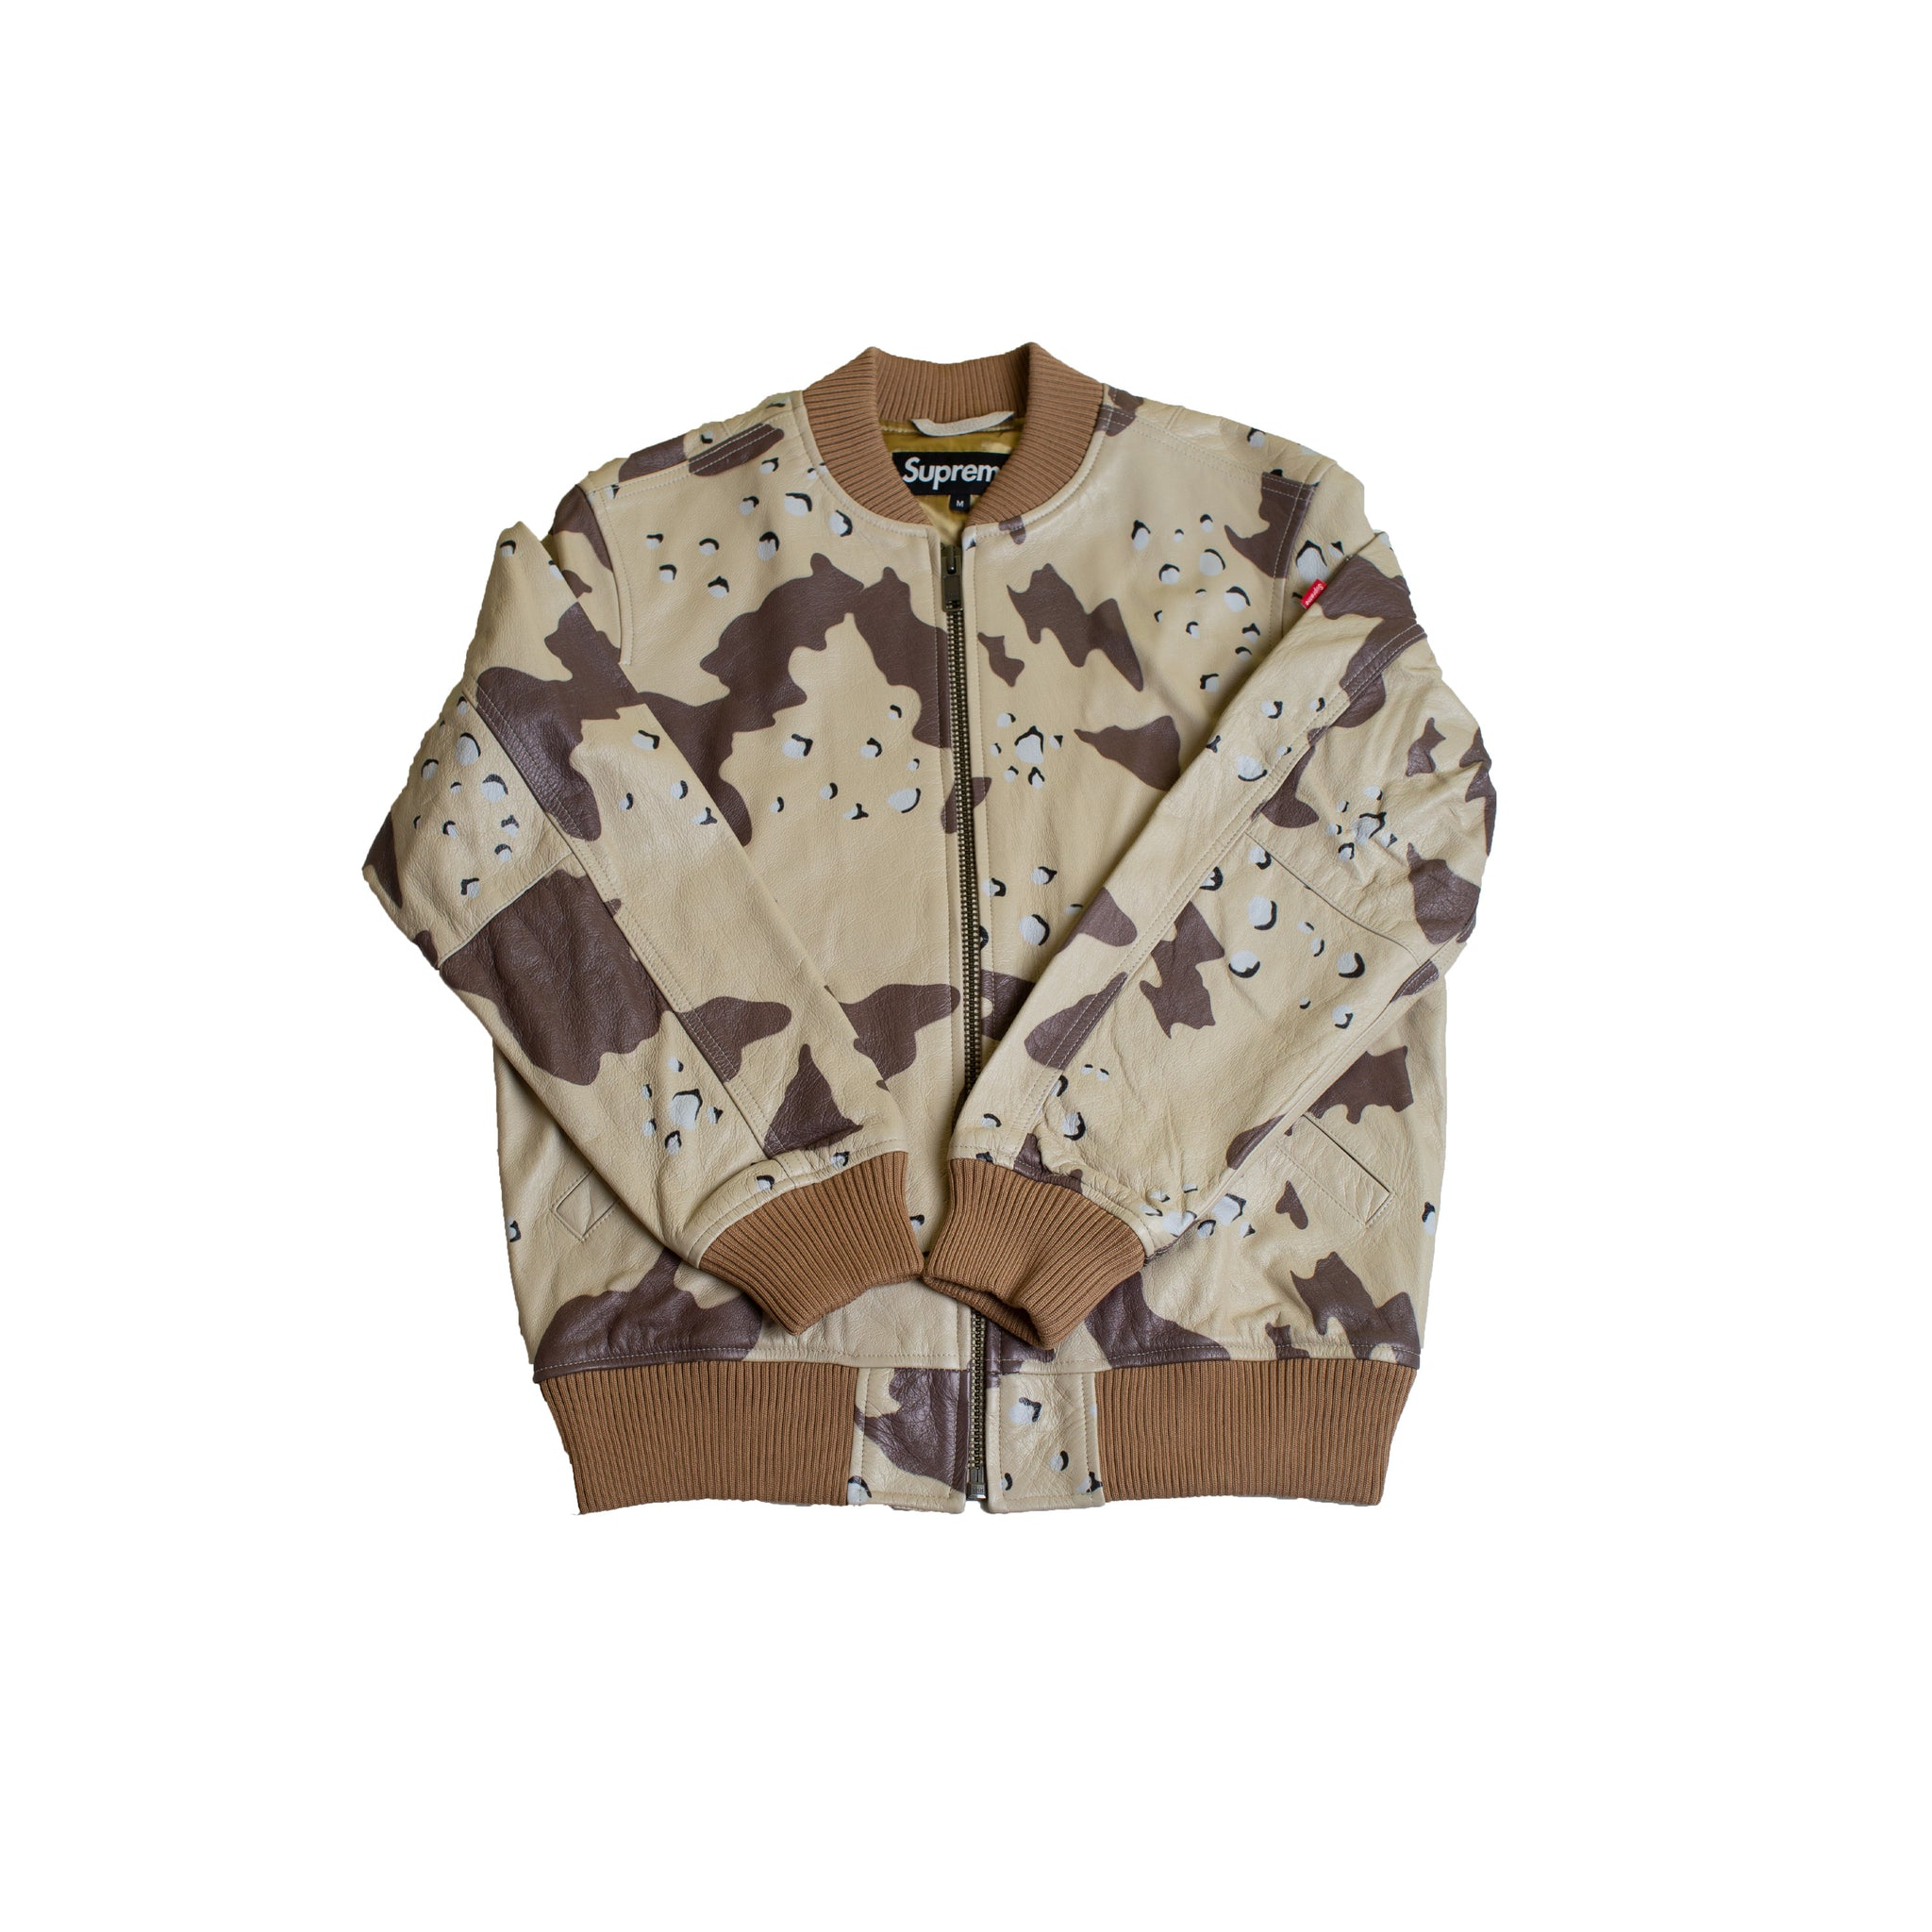 Supreme Desert Camo Leather MA-1 Jacket